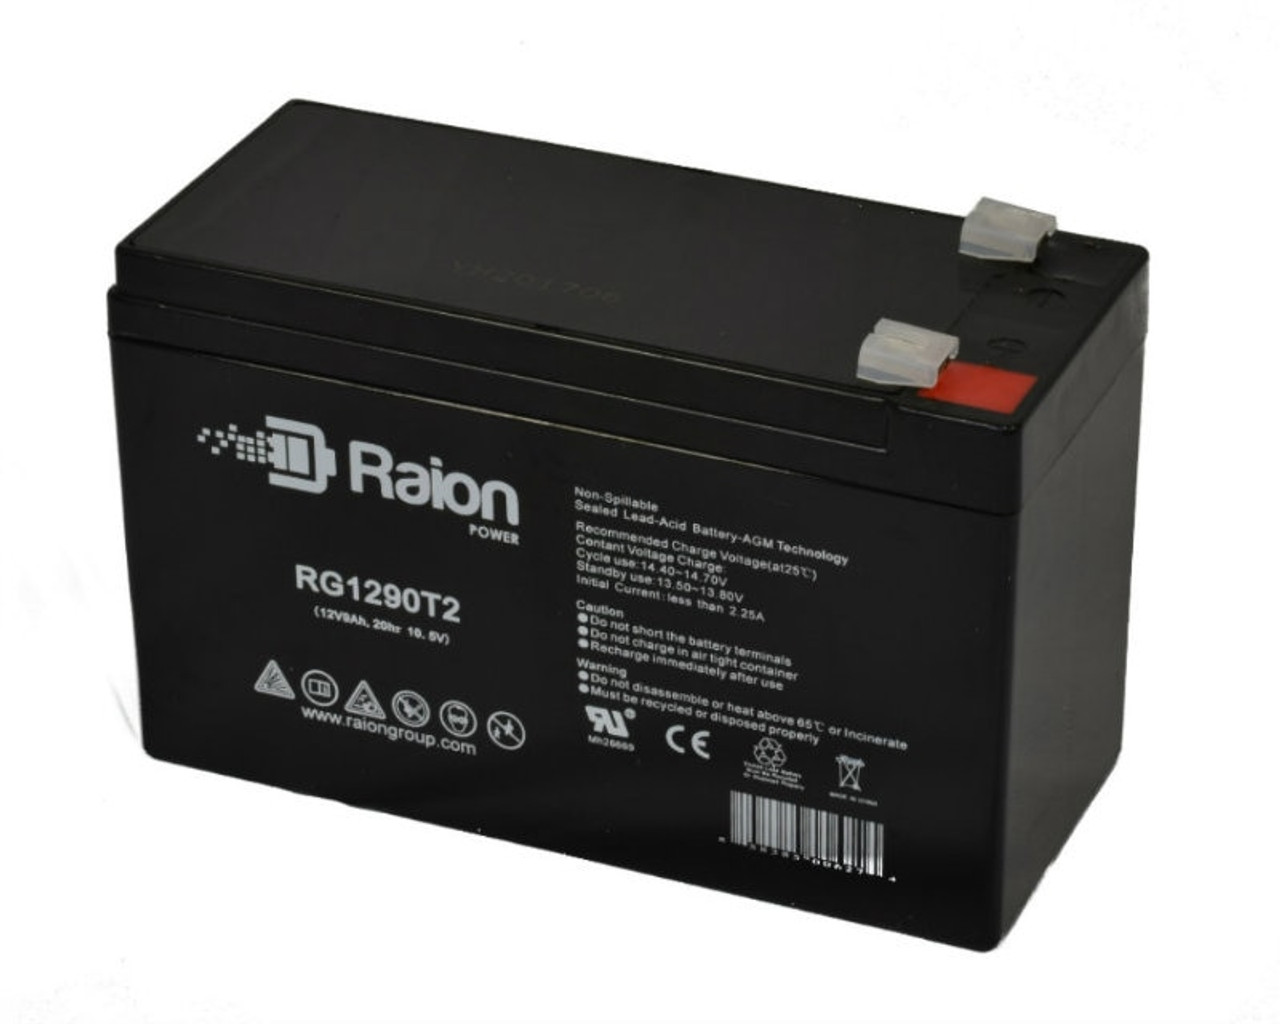 Raion Power RG1290T2 Replacement Battery for Potter Electric PFC-5004RG1290T2 Fire Alarm Control Panel